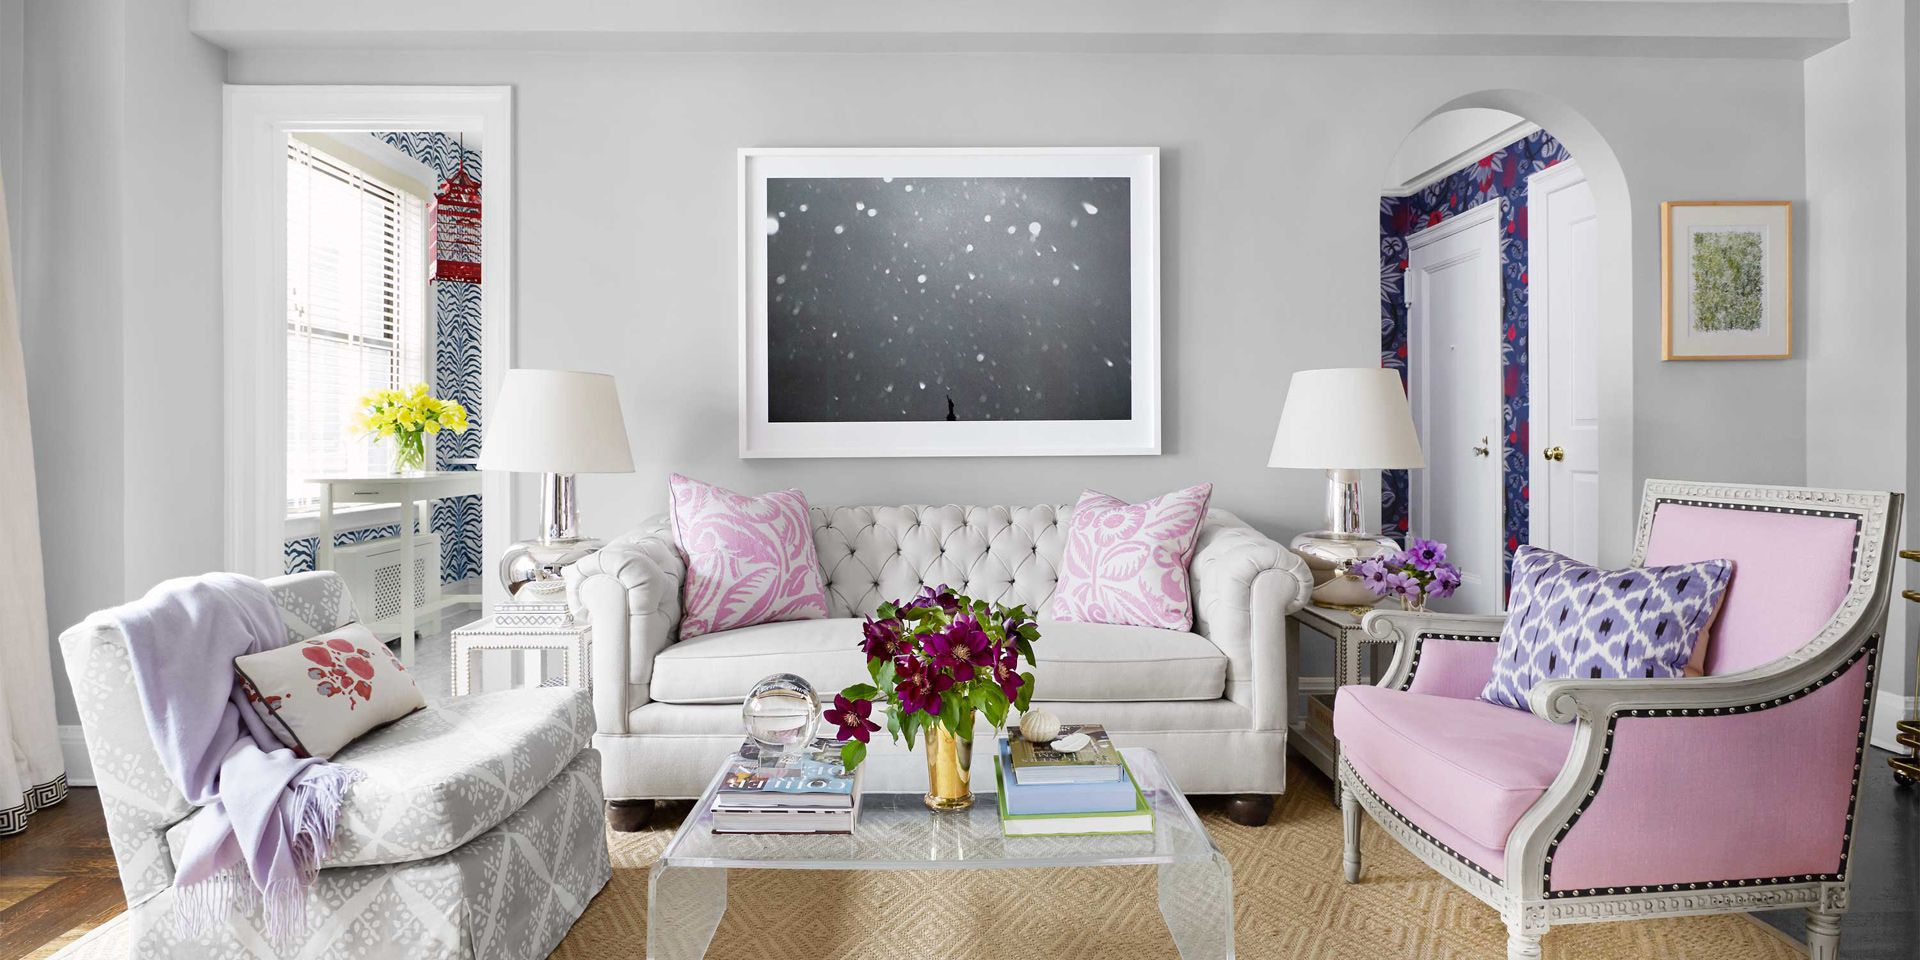 home decorating ideas and tips  20  Best Home Decorating Ideas - Easy Interior Design and Decor Tips